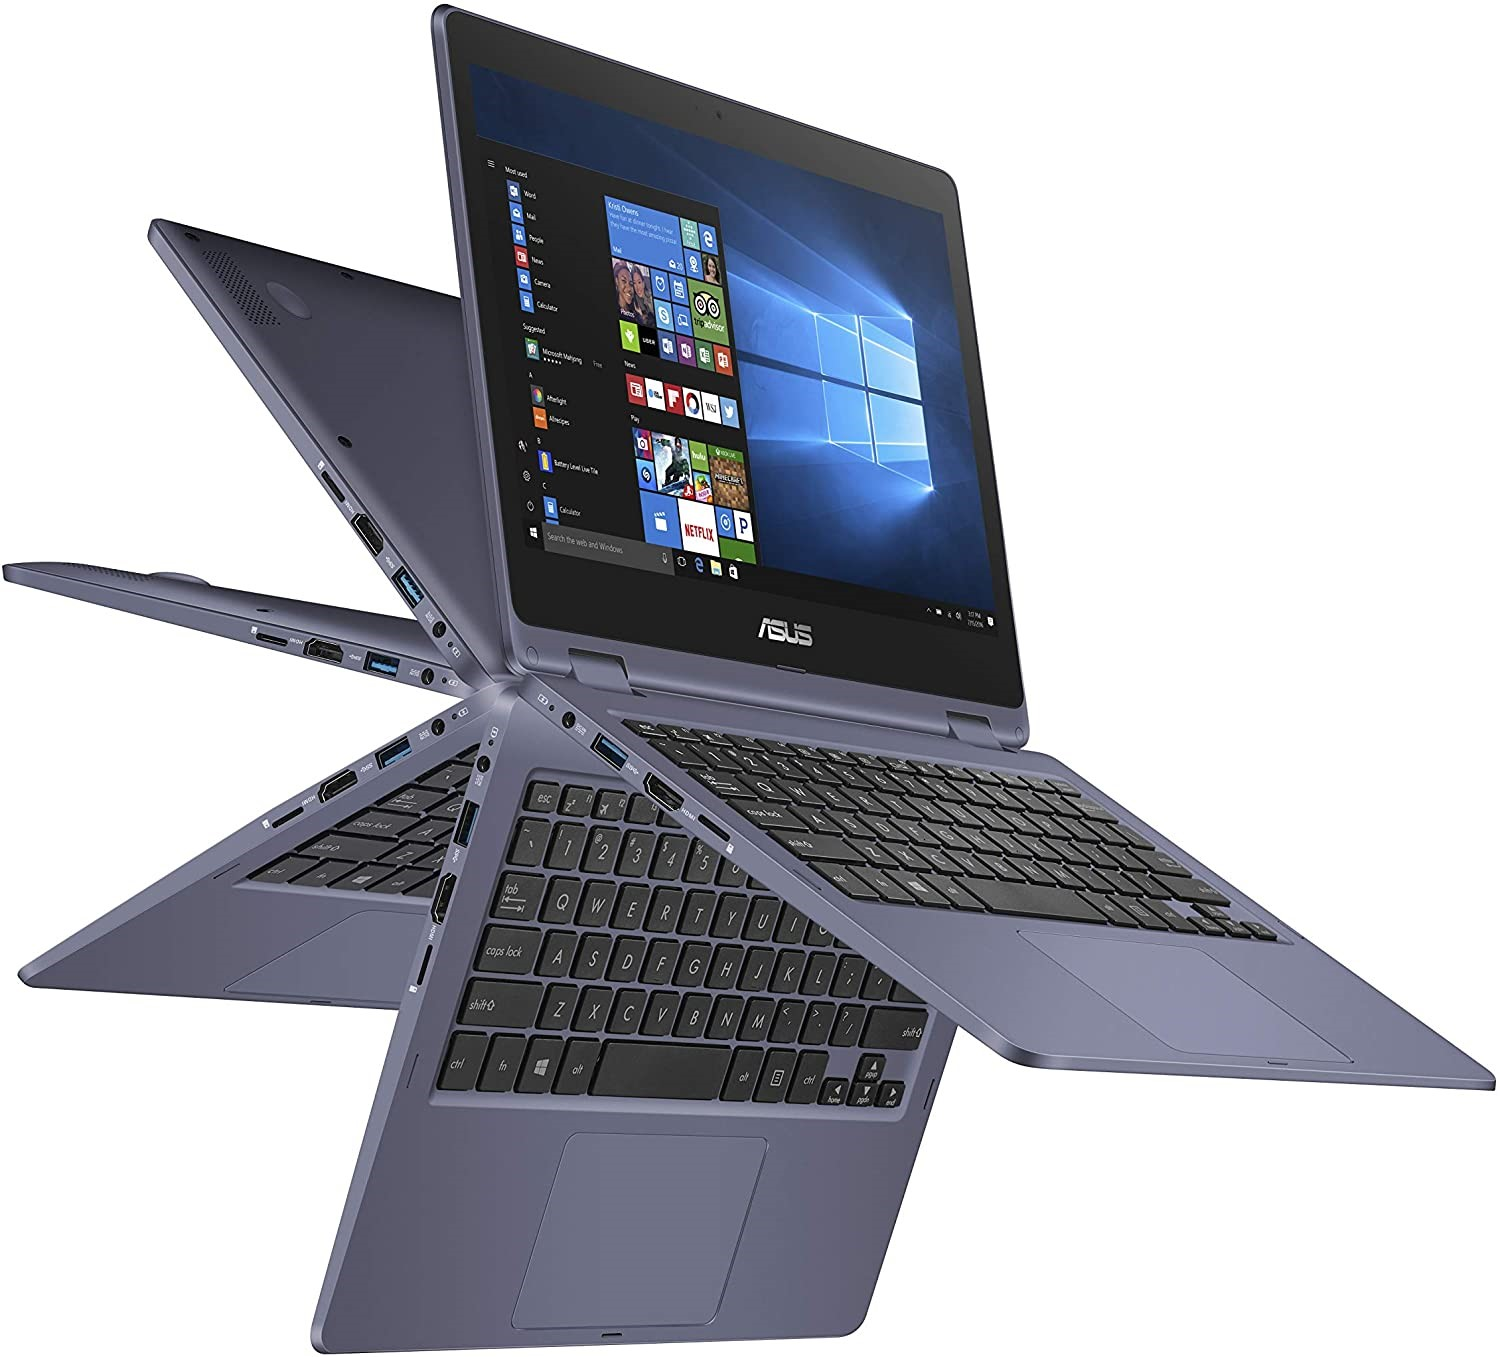 ASUS VivoBook Flip Thin and Light 2-in-1